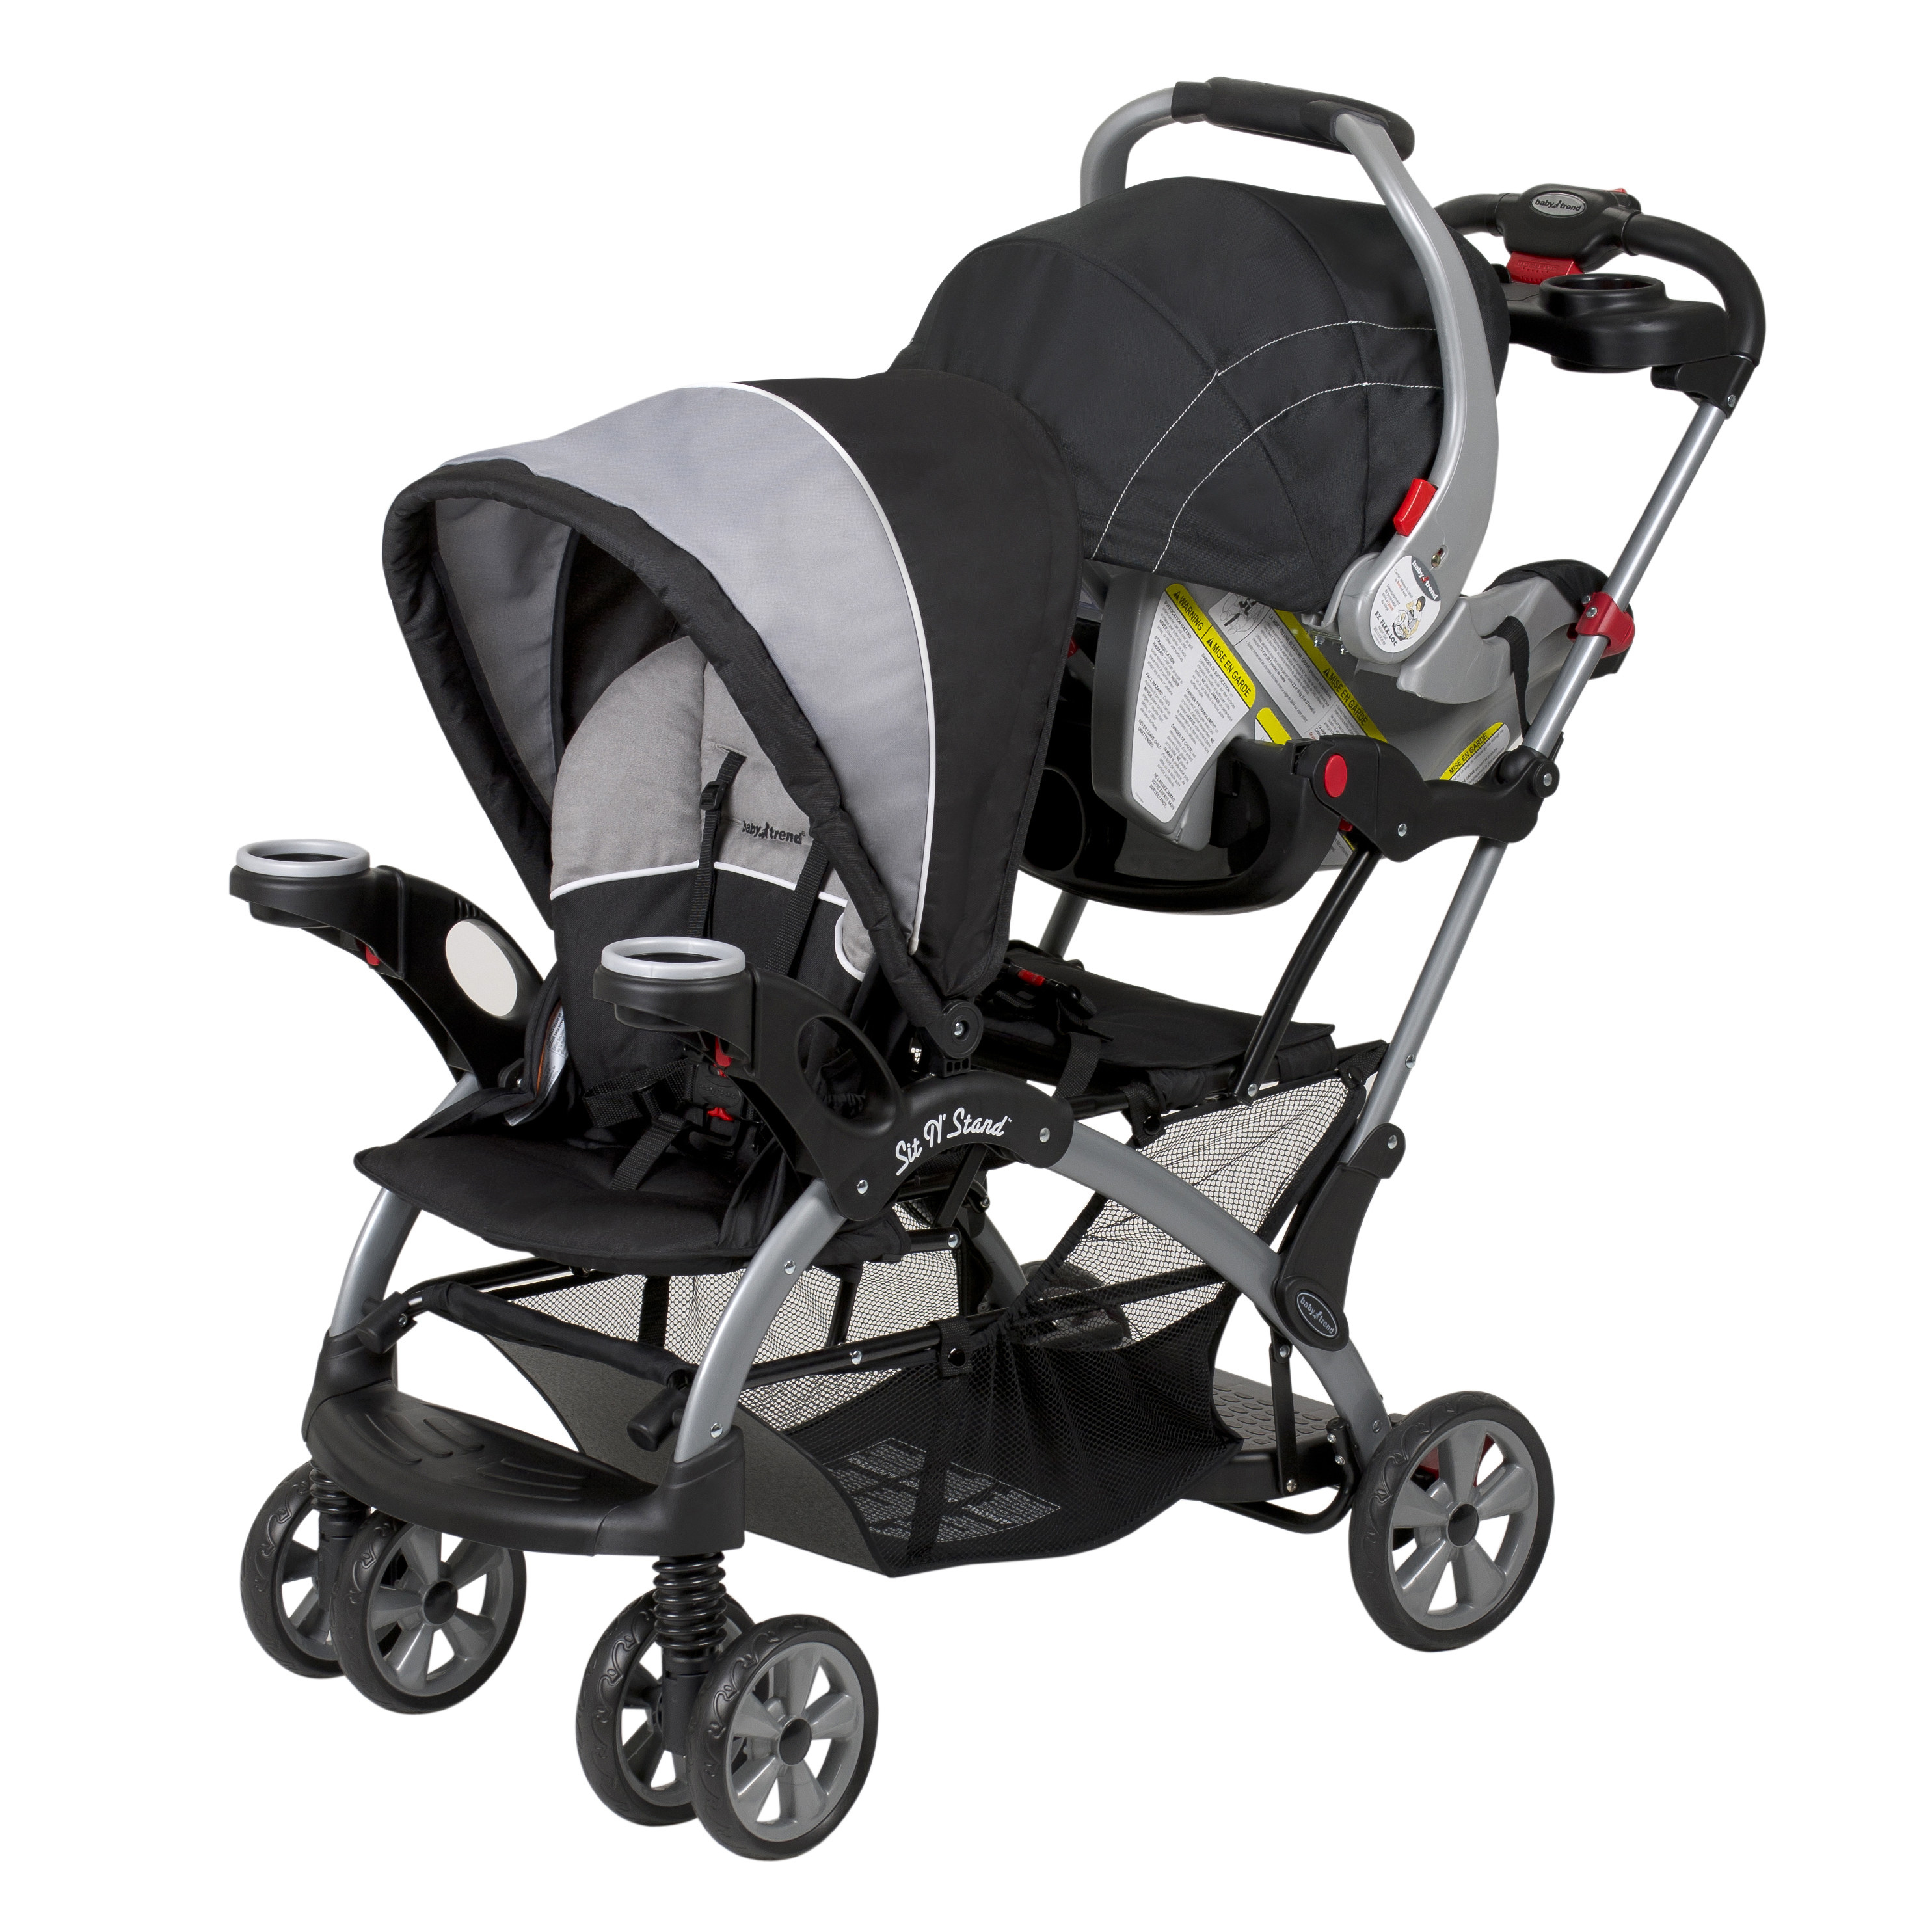 a dual stroller in black with a car seat in the back